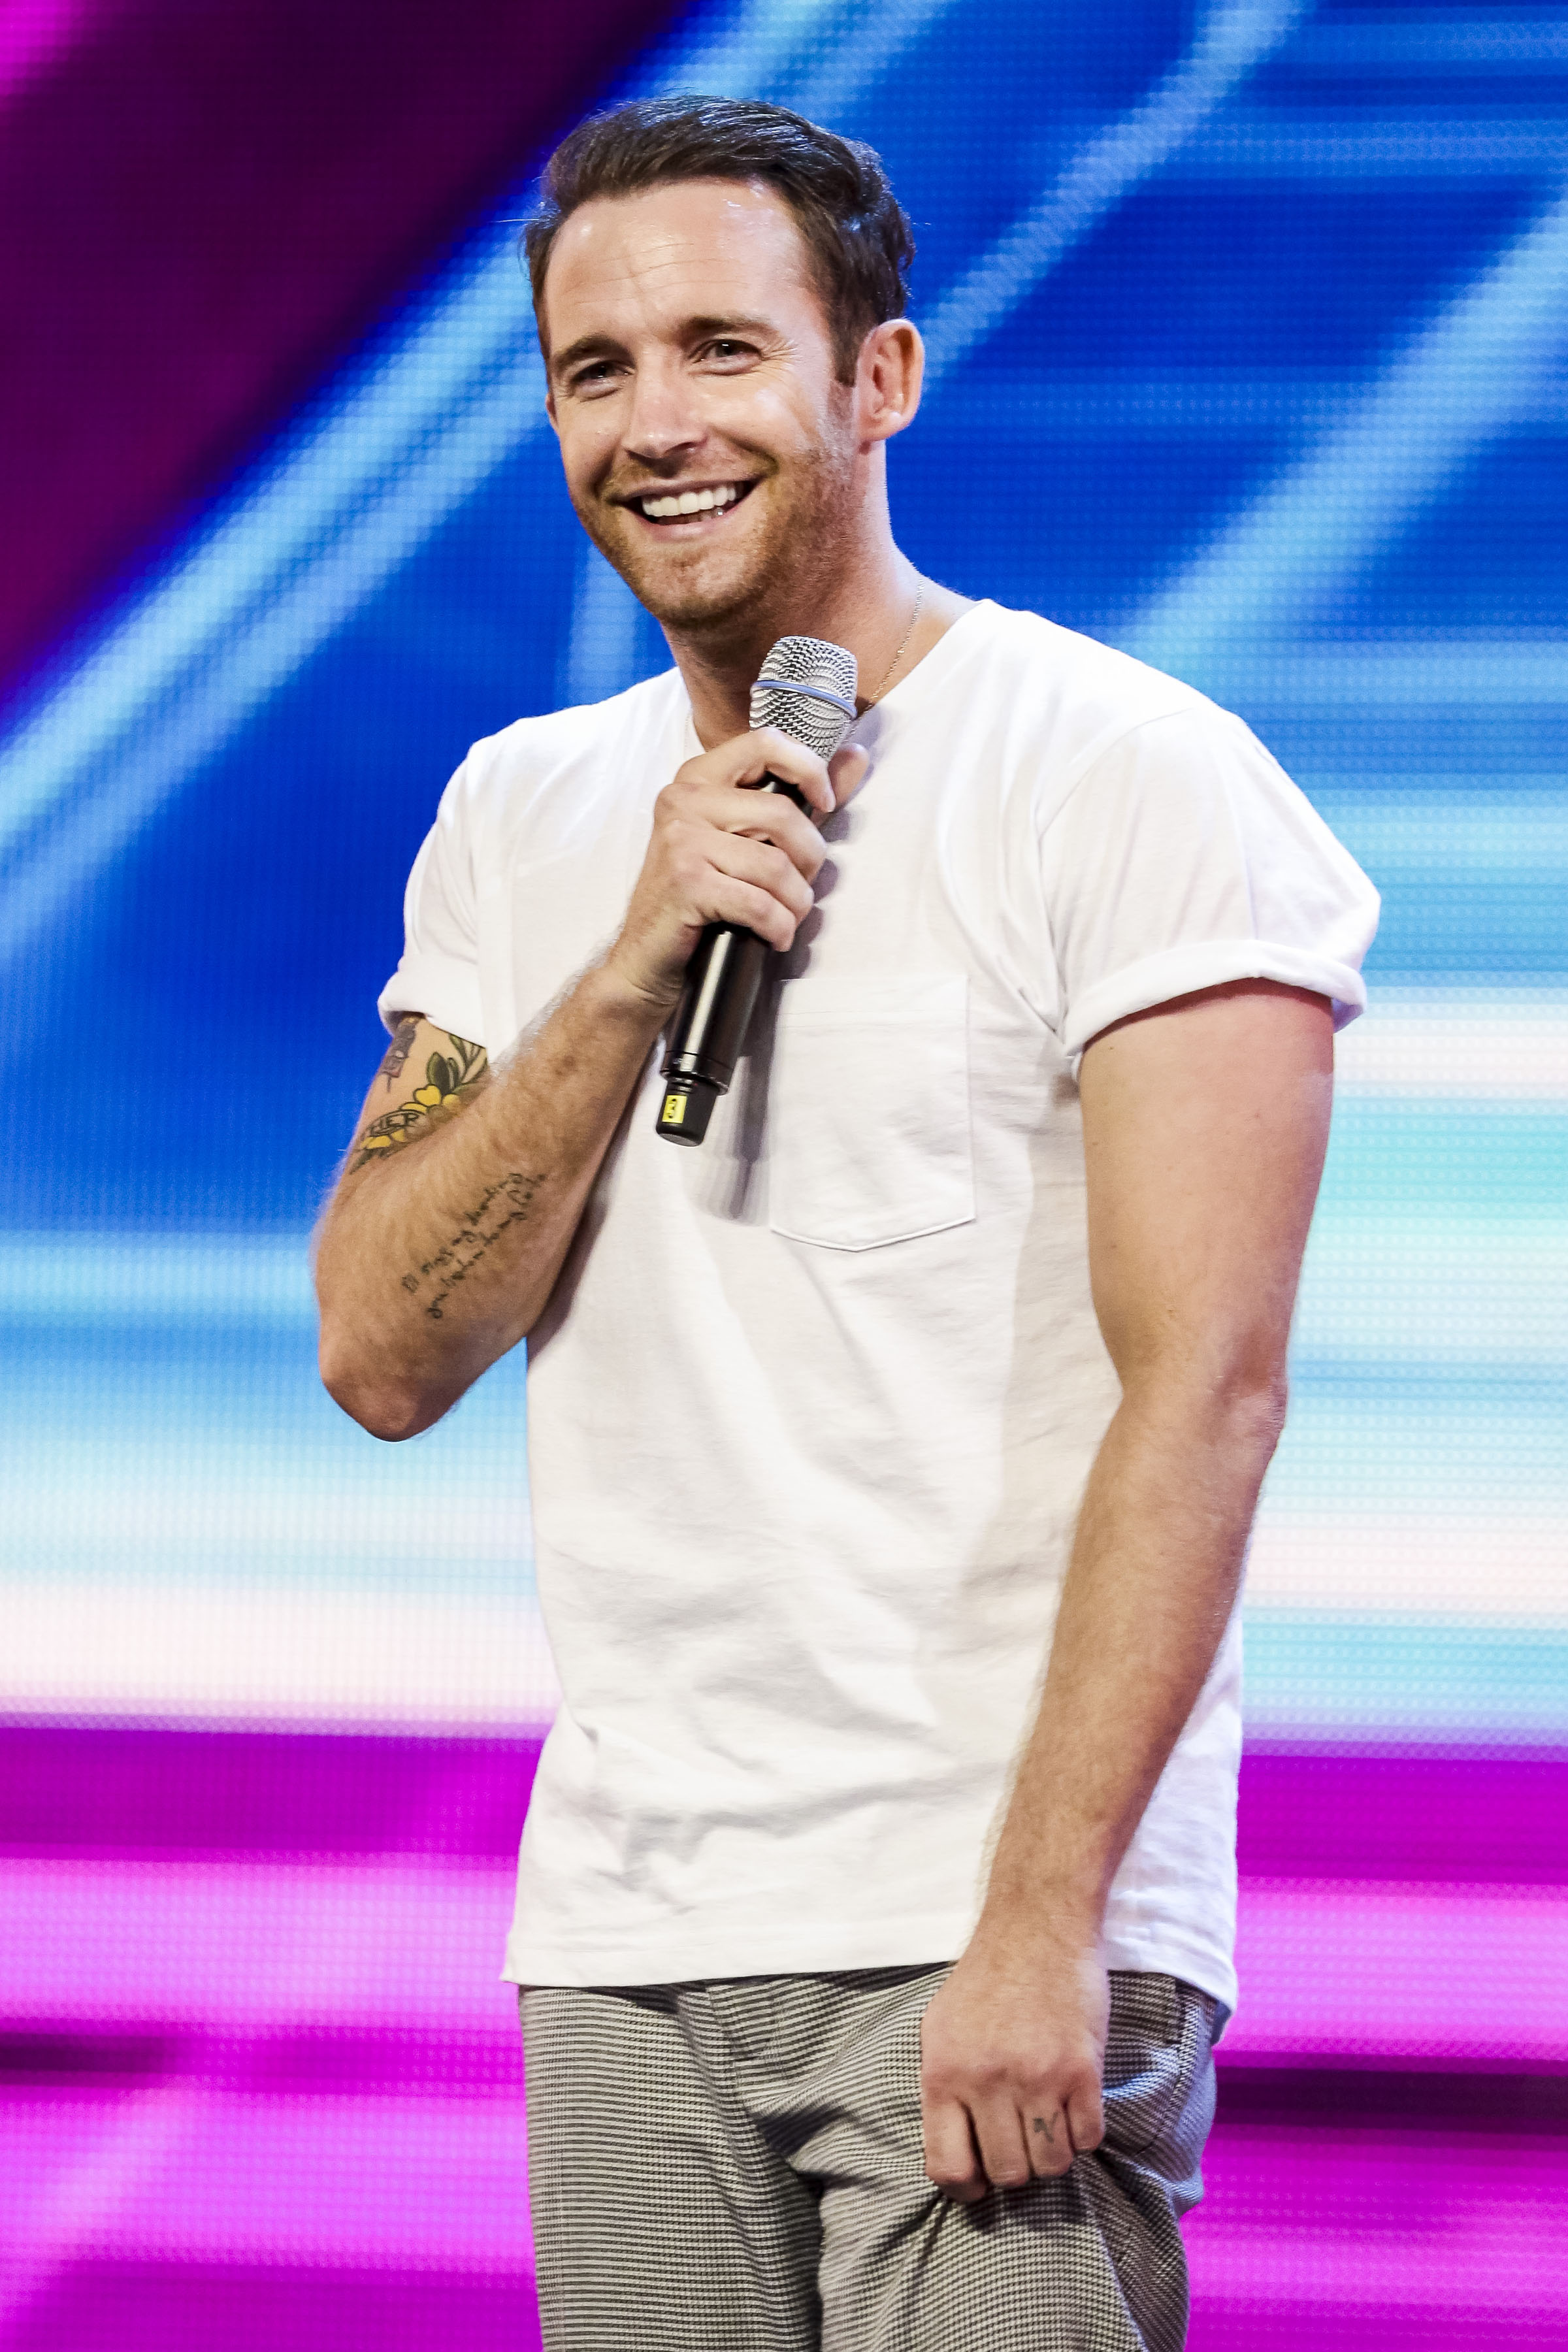 X Factor star Jay James Picton says he would gladly take on James Blunt in a chart battle (Pic: ©SYCO /THAMES TV/ITV)